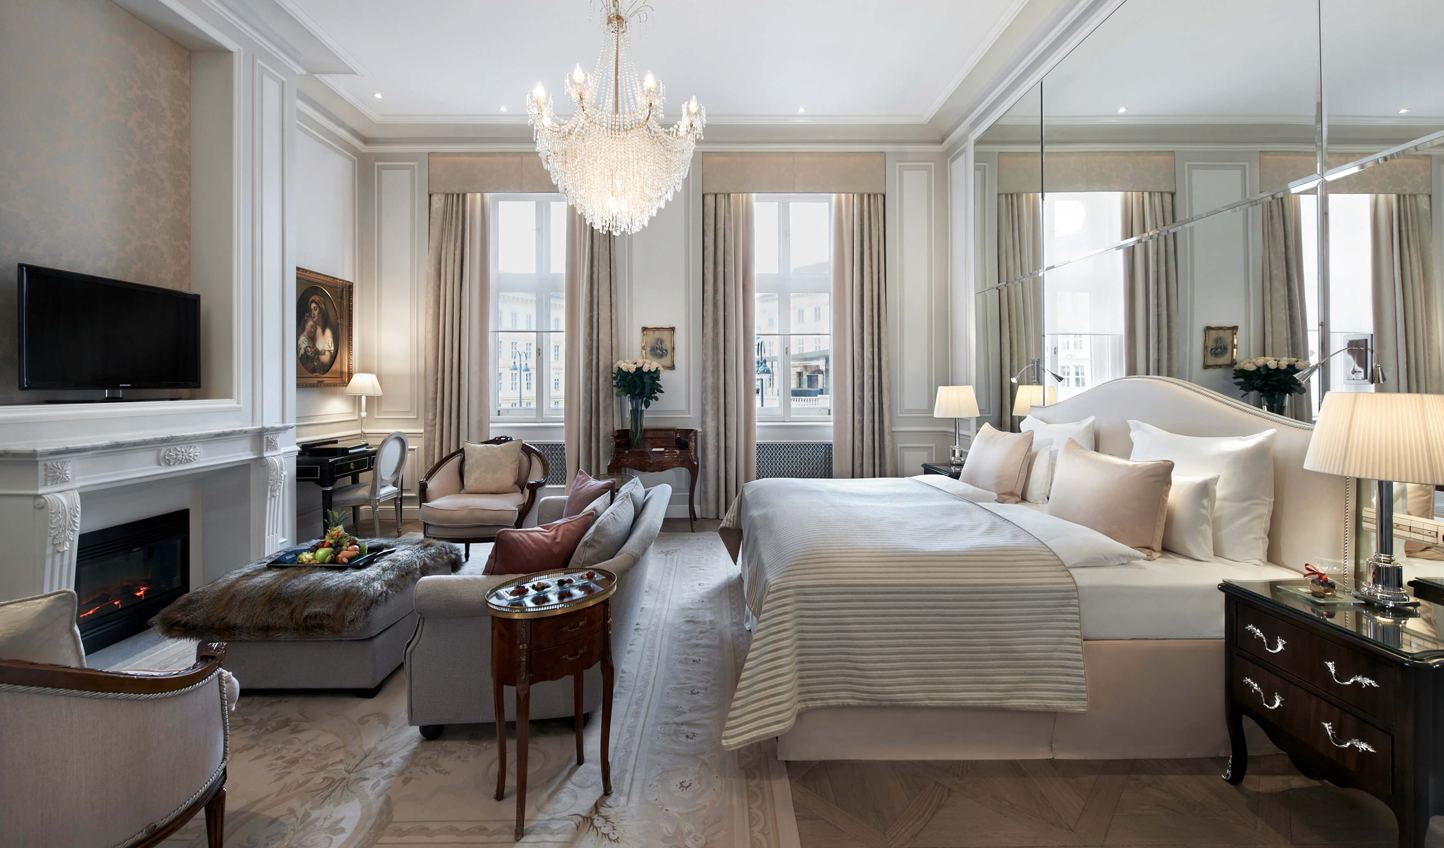 For true Viennese panache, a stay at Hotel Sacher is a must